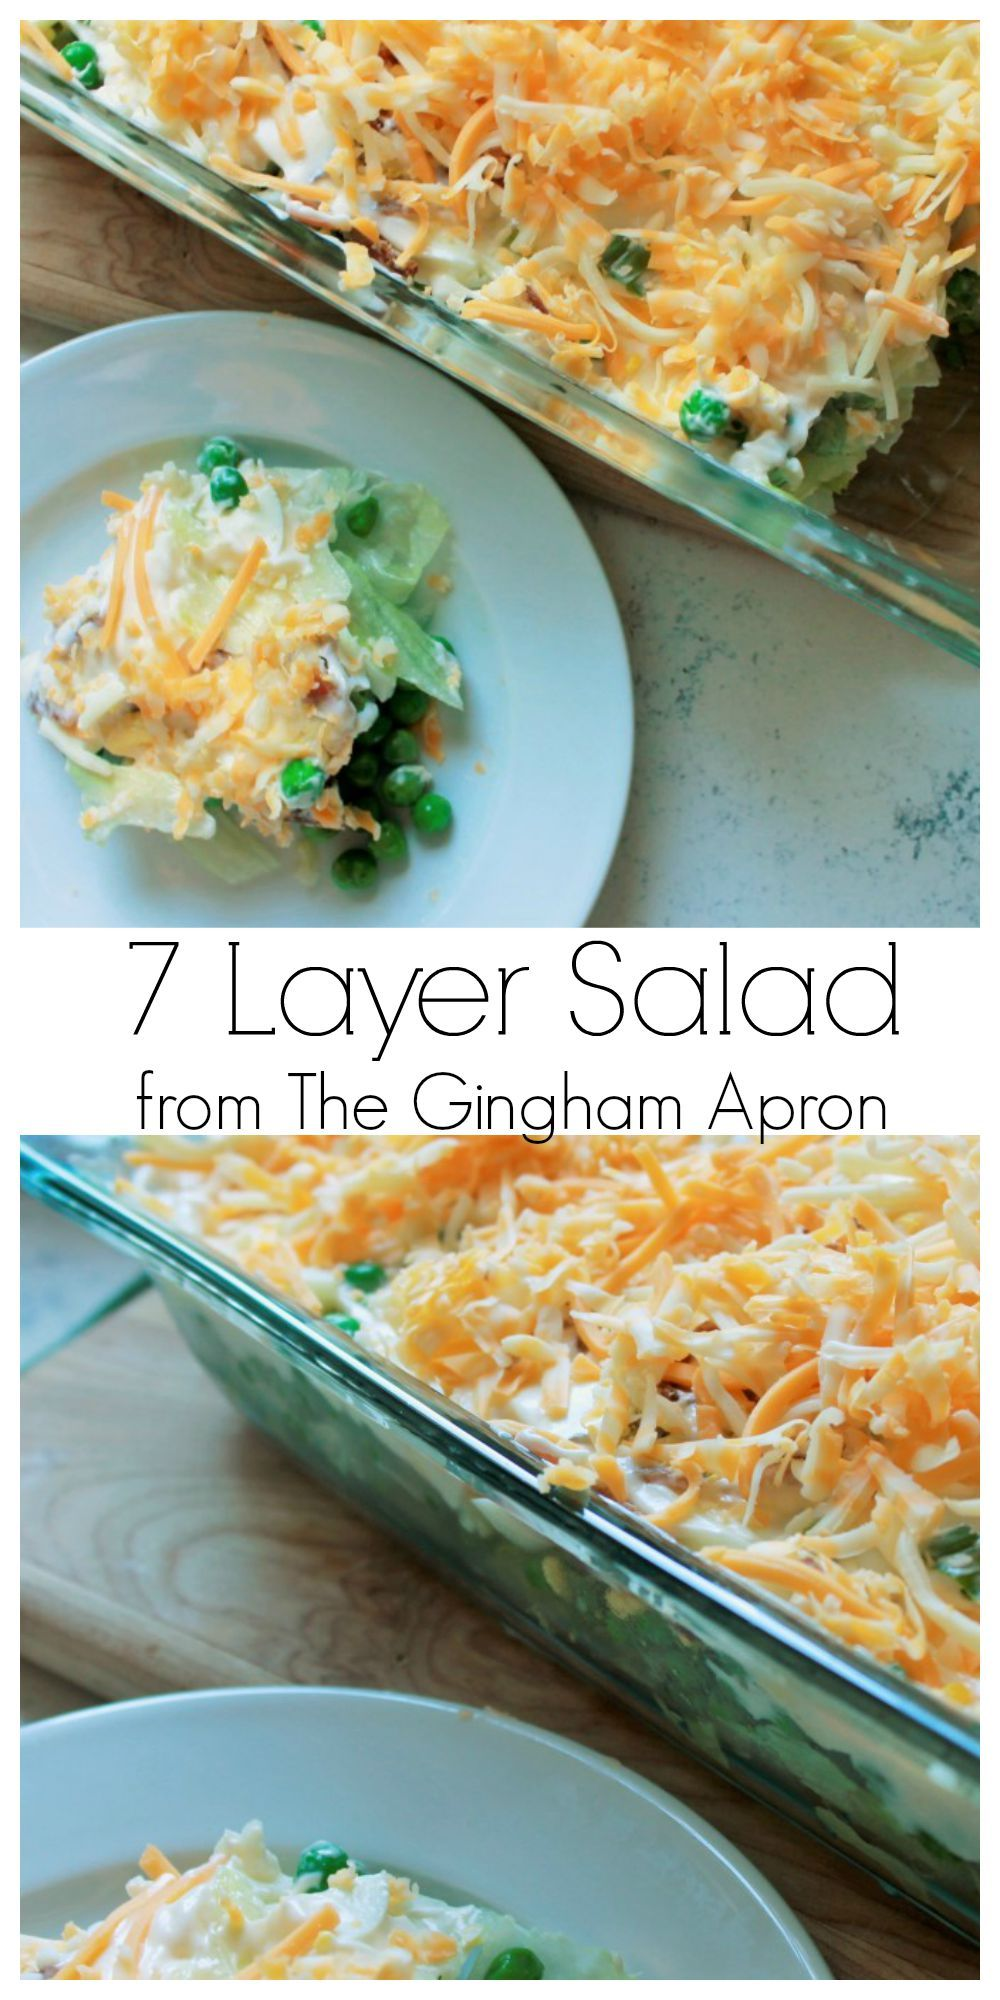 Layered salad for the winter: several interesting recipes